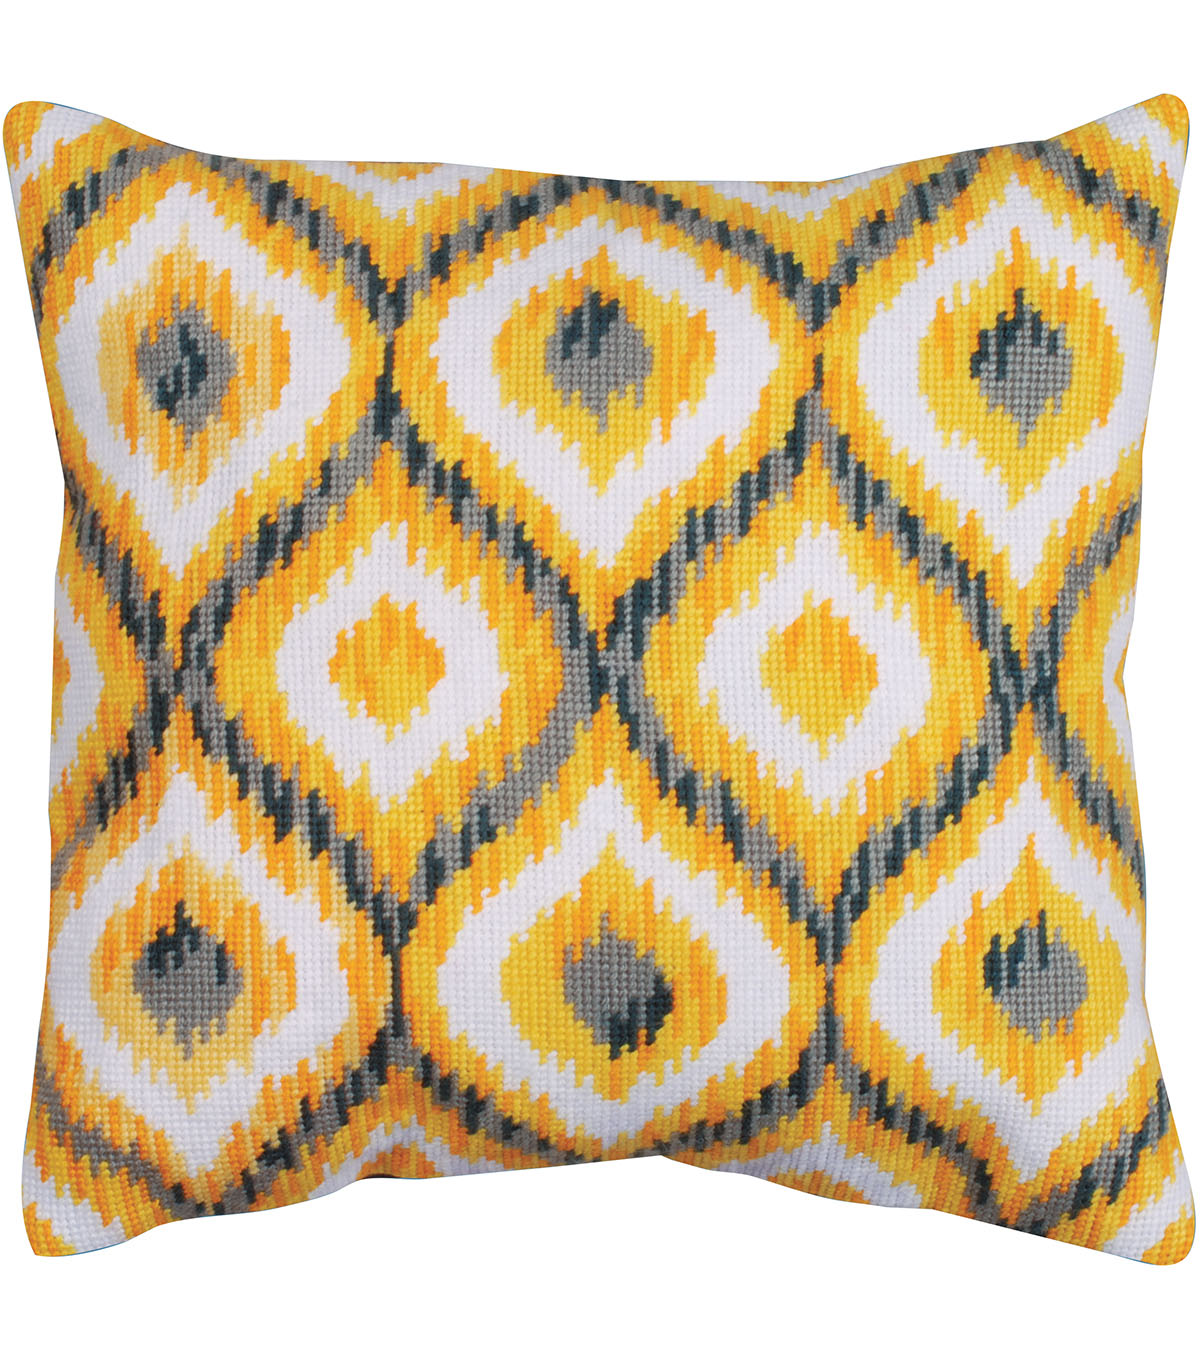 Design Works Neeedlepoint Kit 12\u0022X12\u0022-Yellow Ikat-Stitched In Yarn